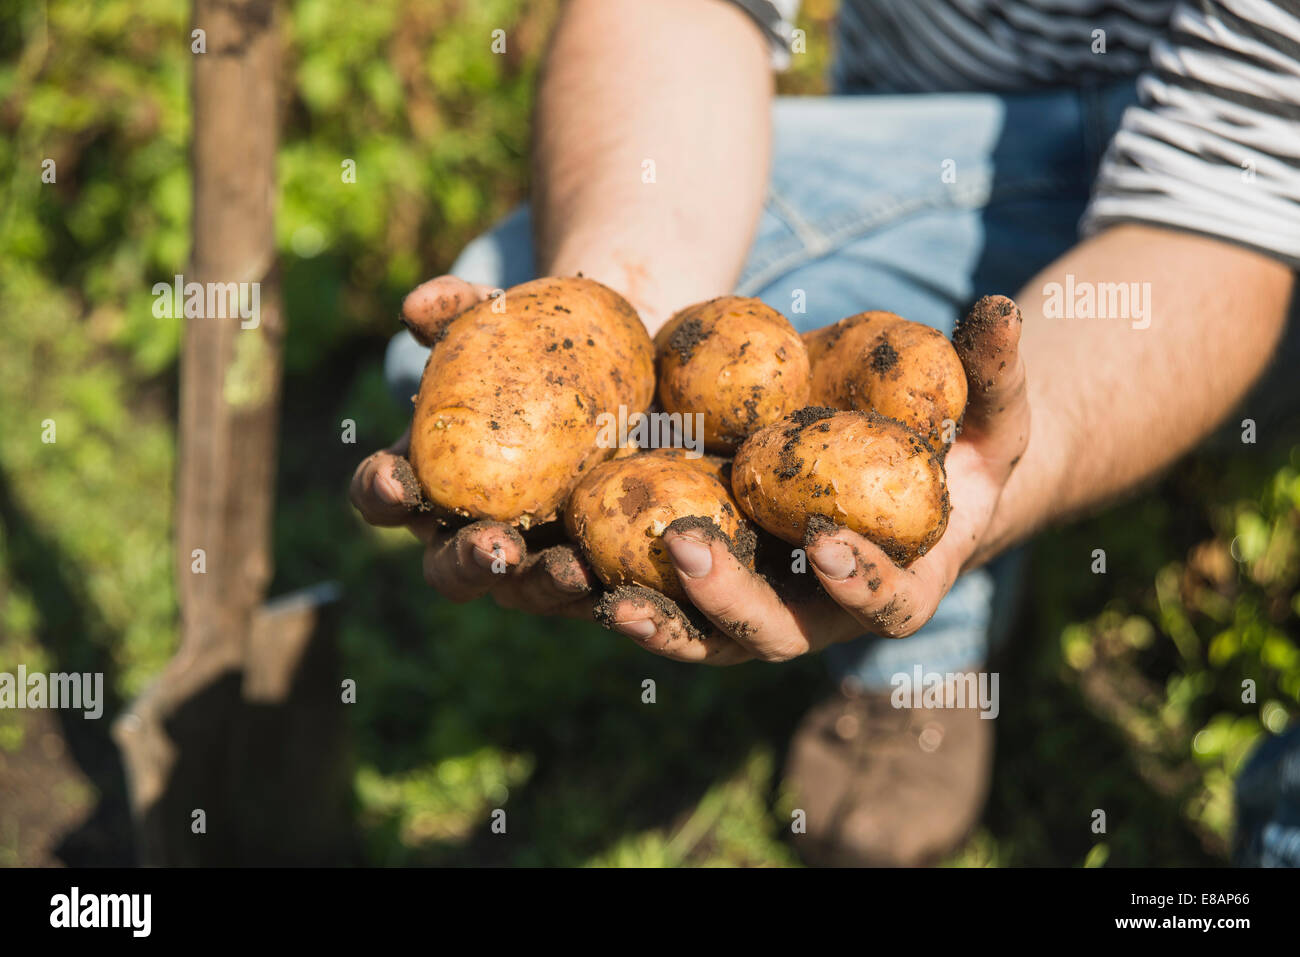 Gardener holding freshly dug potatoes - Stock Image